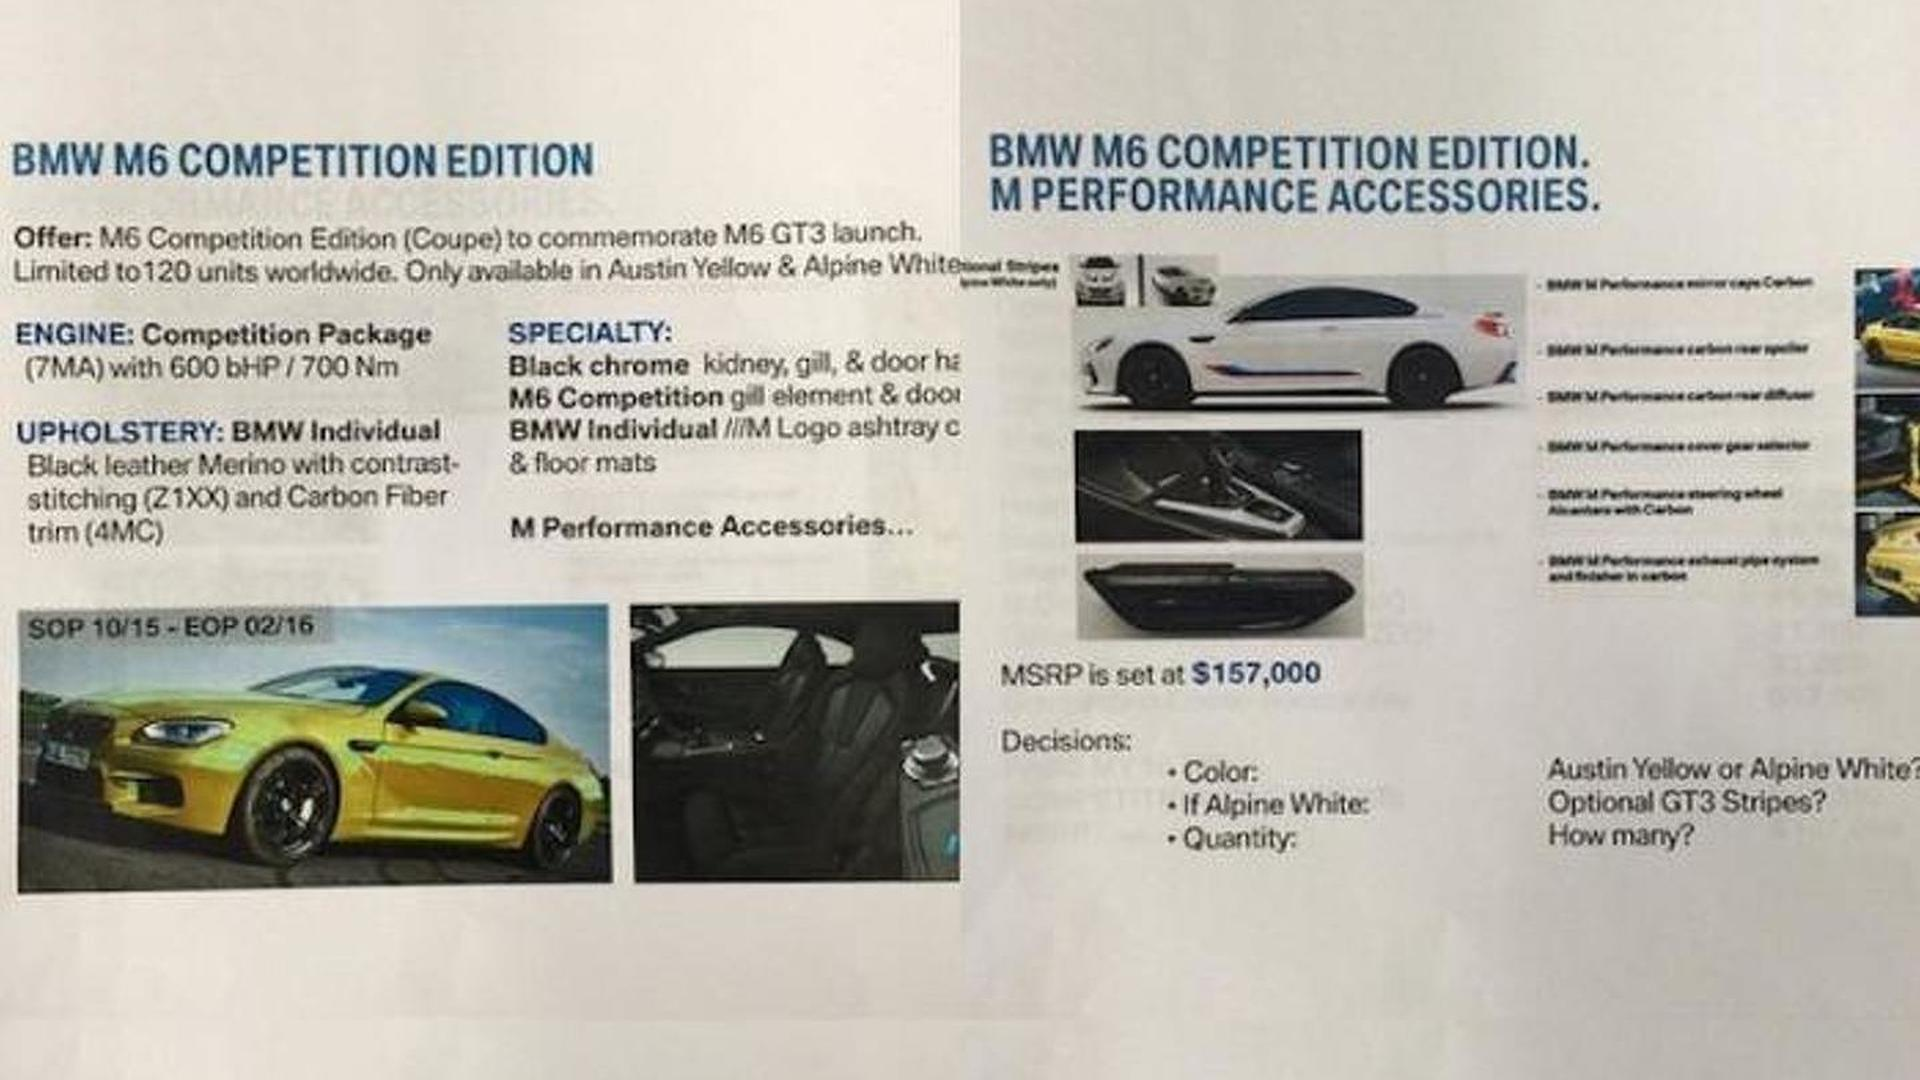 BMW M6 Competition Edition reportedly leaked